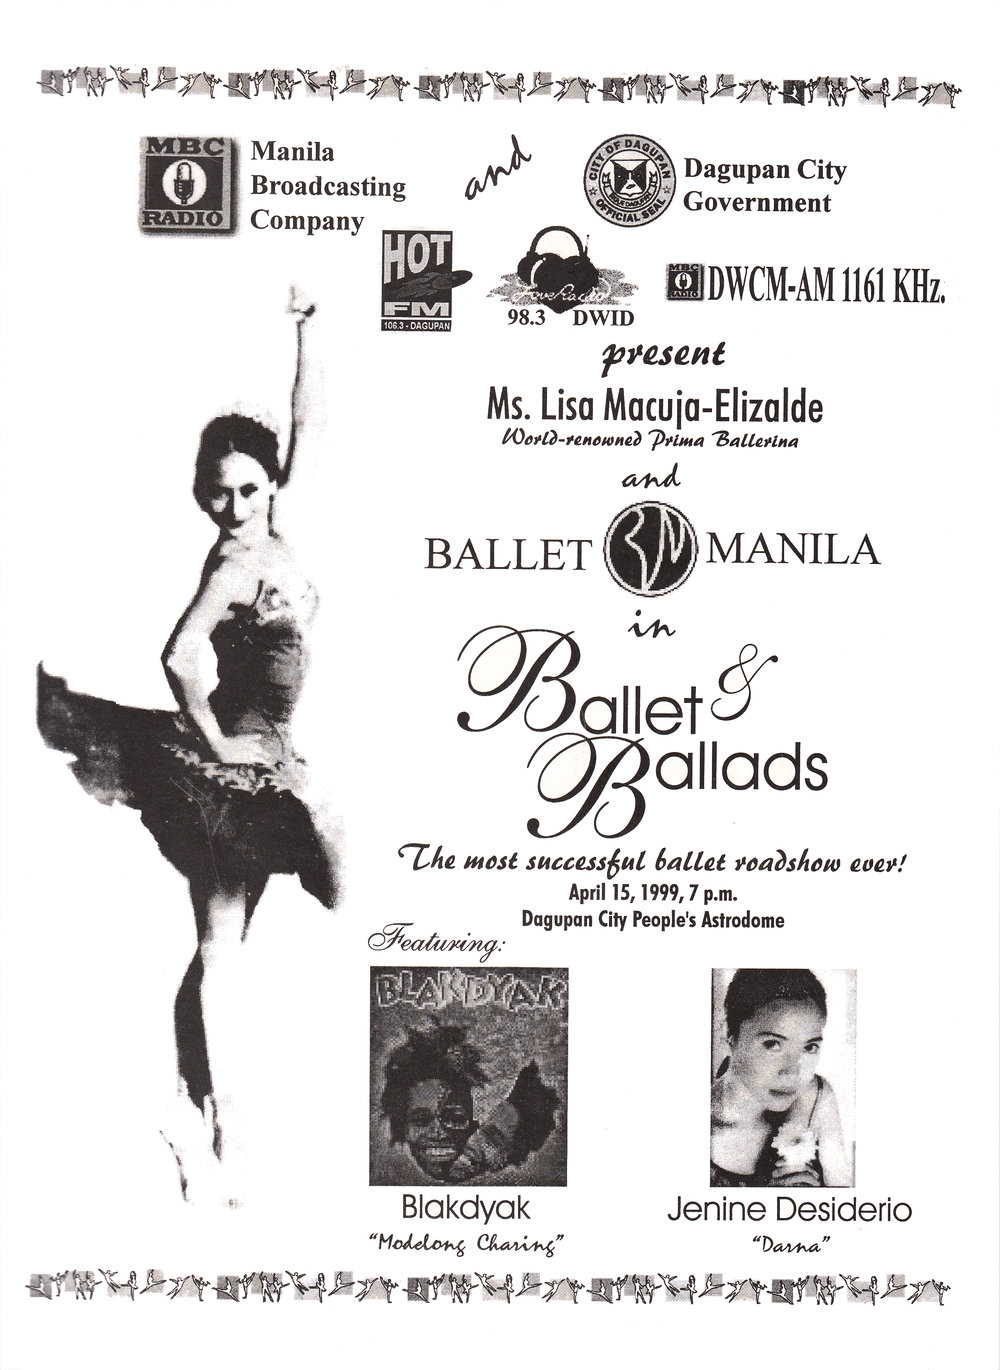 Souvenir program cover for    Ballet & Ballads    in Dagupan. From the Ballet Manila Archives collection